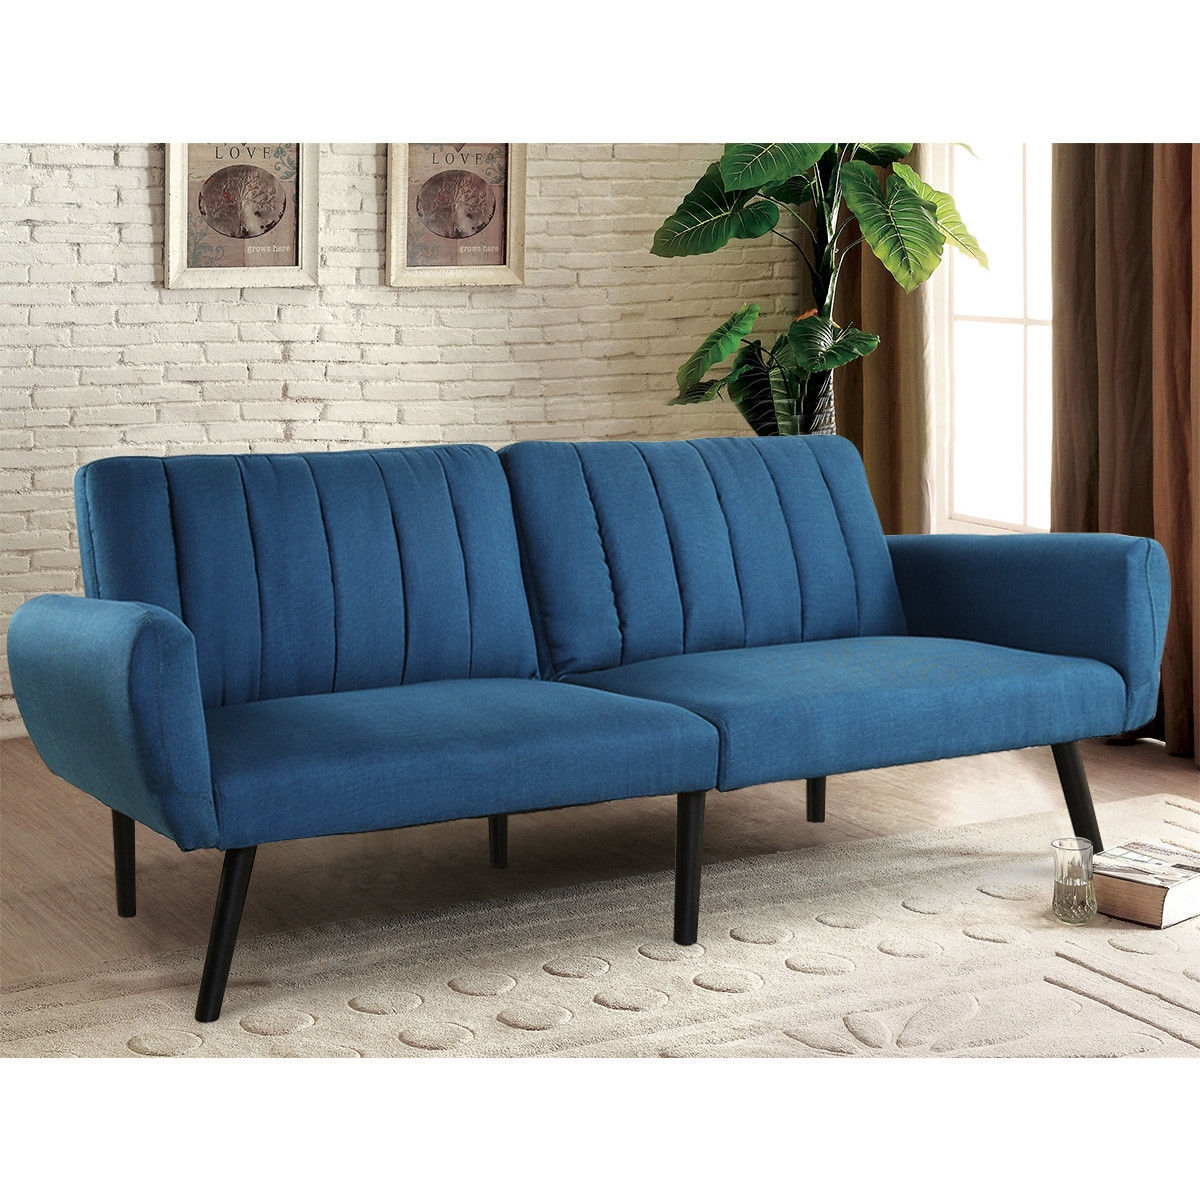 Sofa Futon Bed Sleeper Couch Convertible Mattress